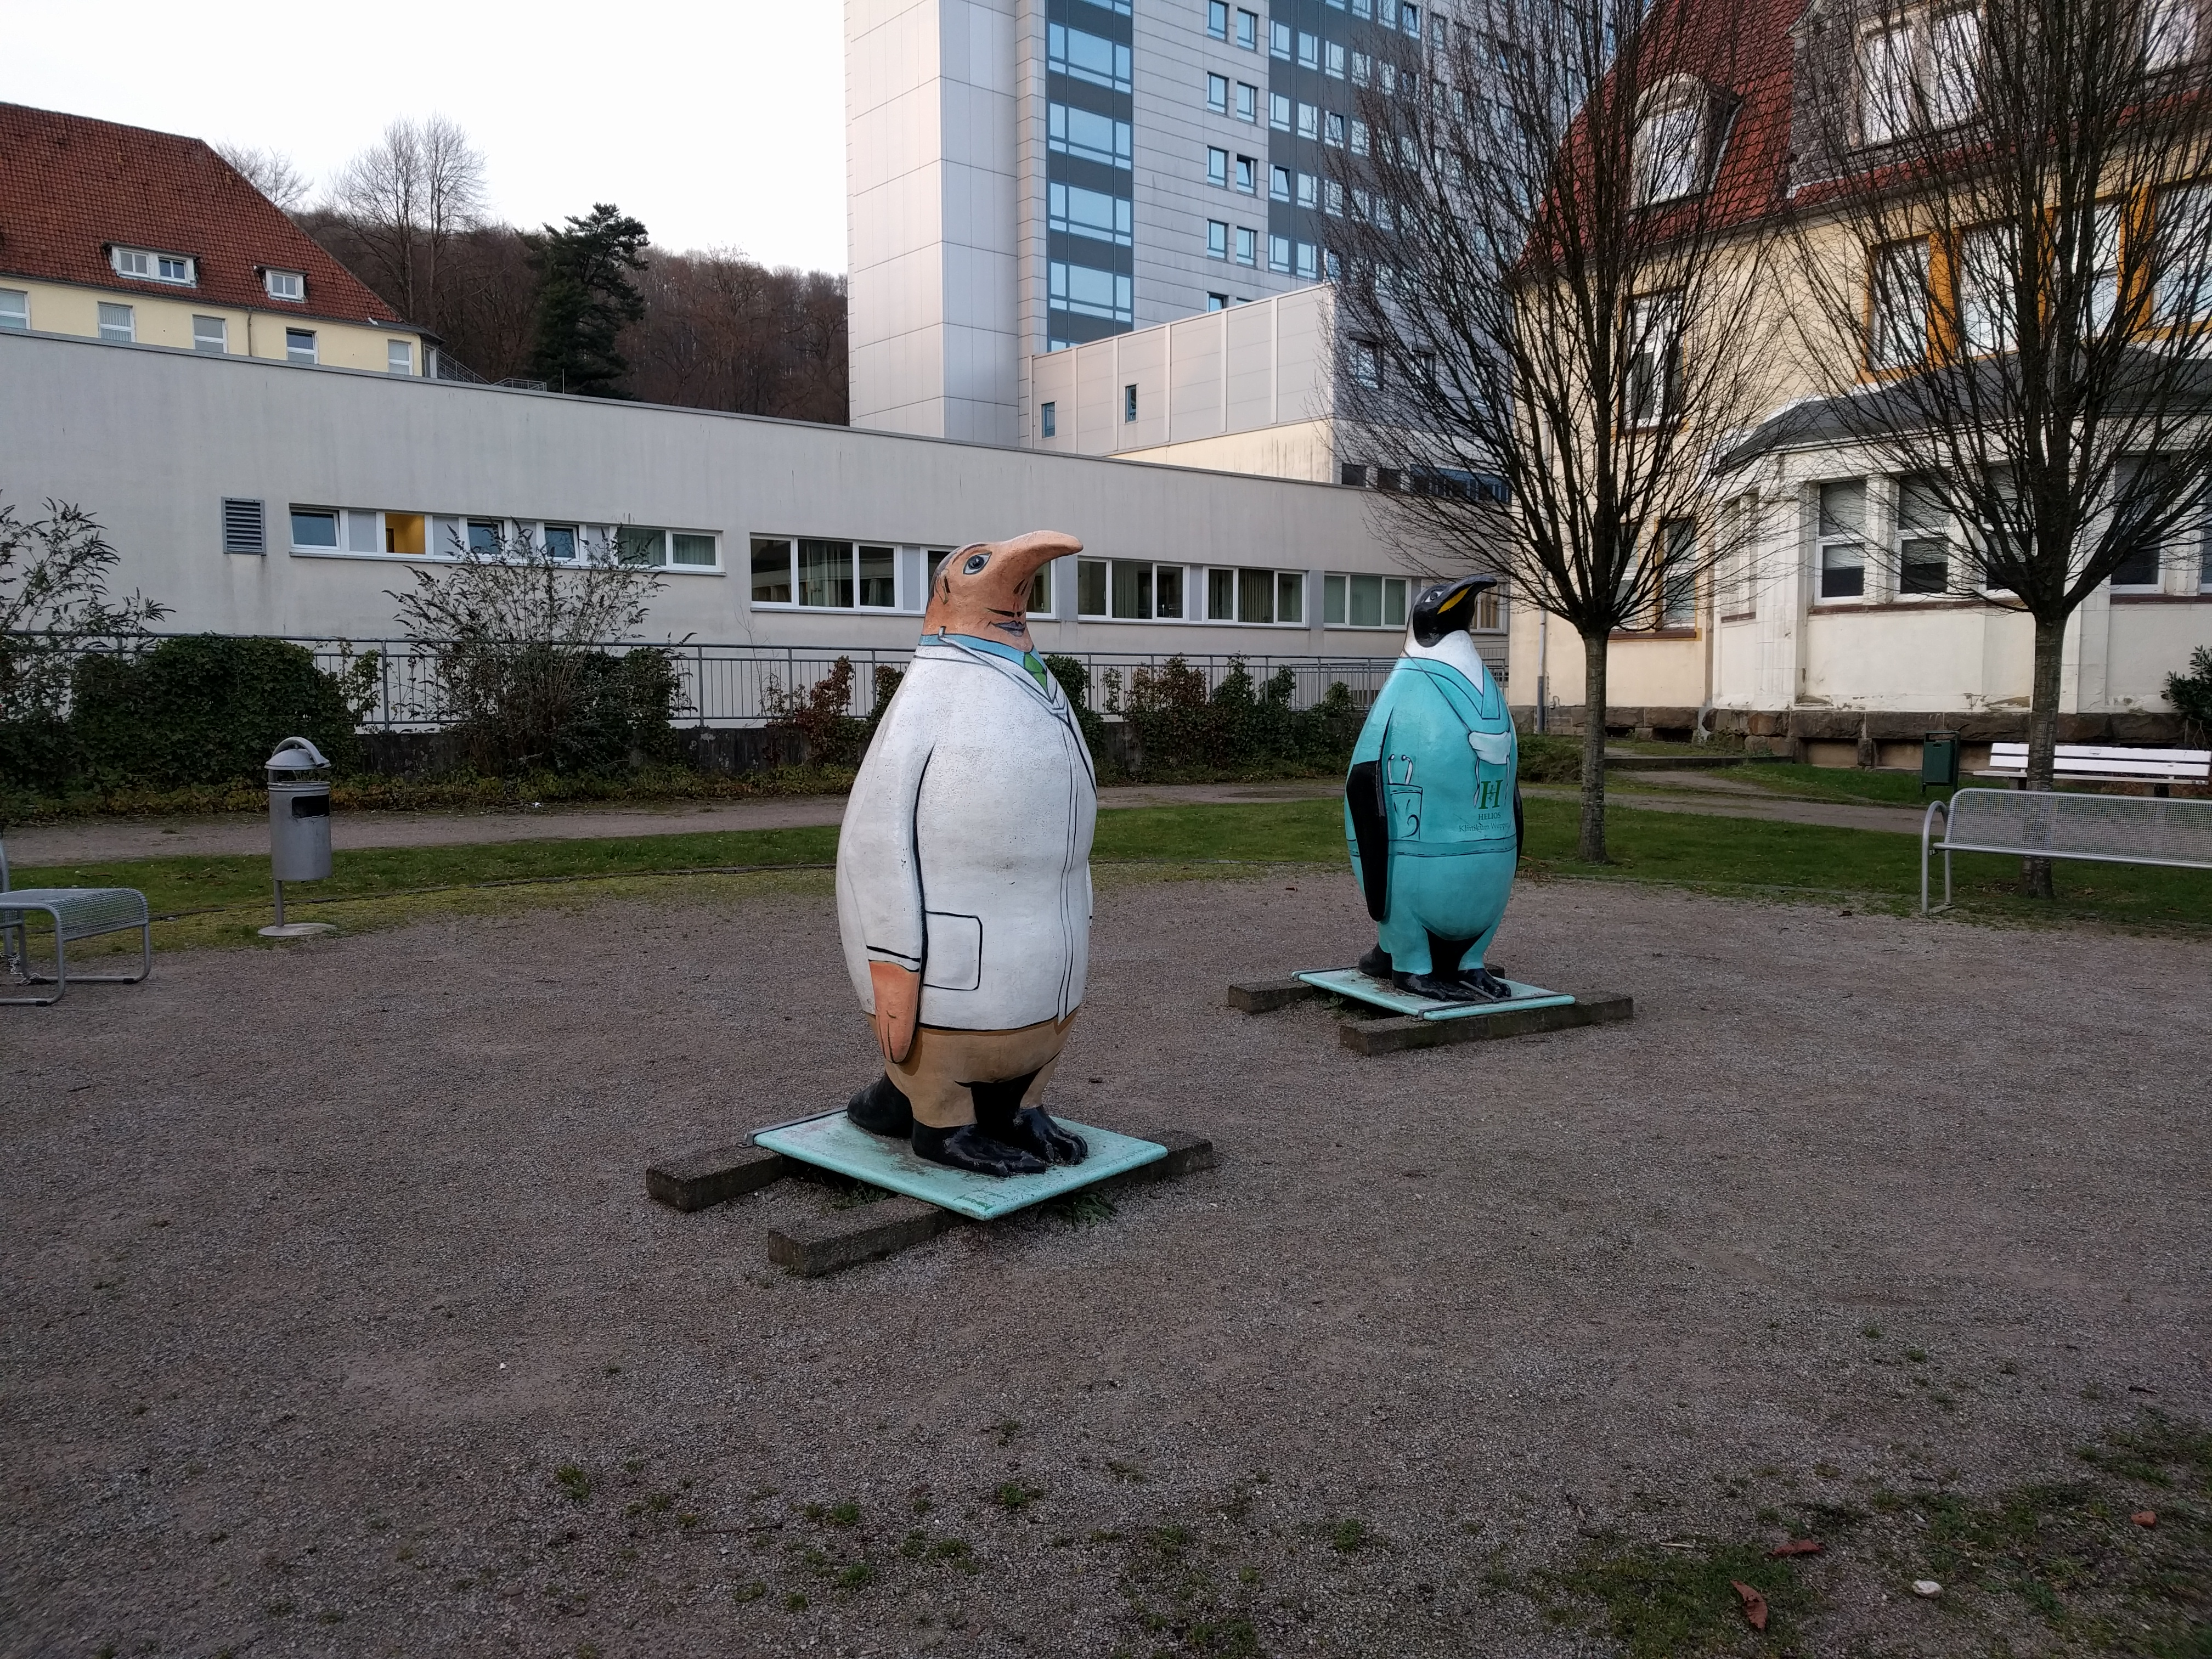 Pinguin am Helios in Wuppertal